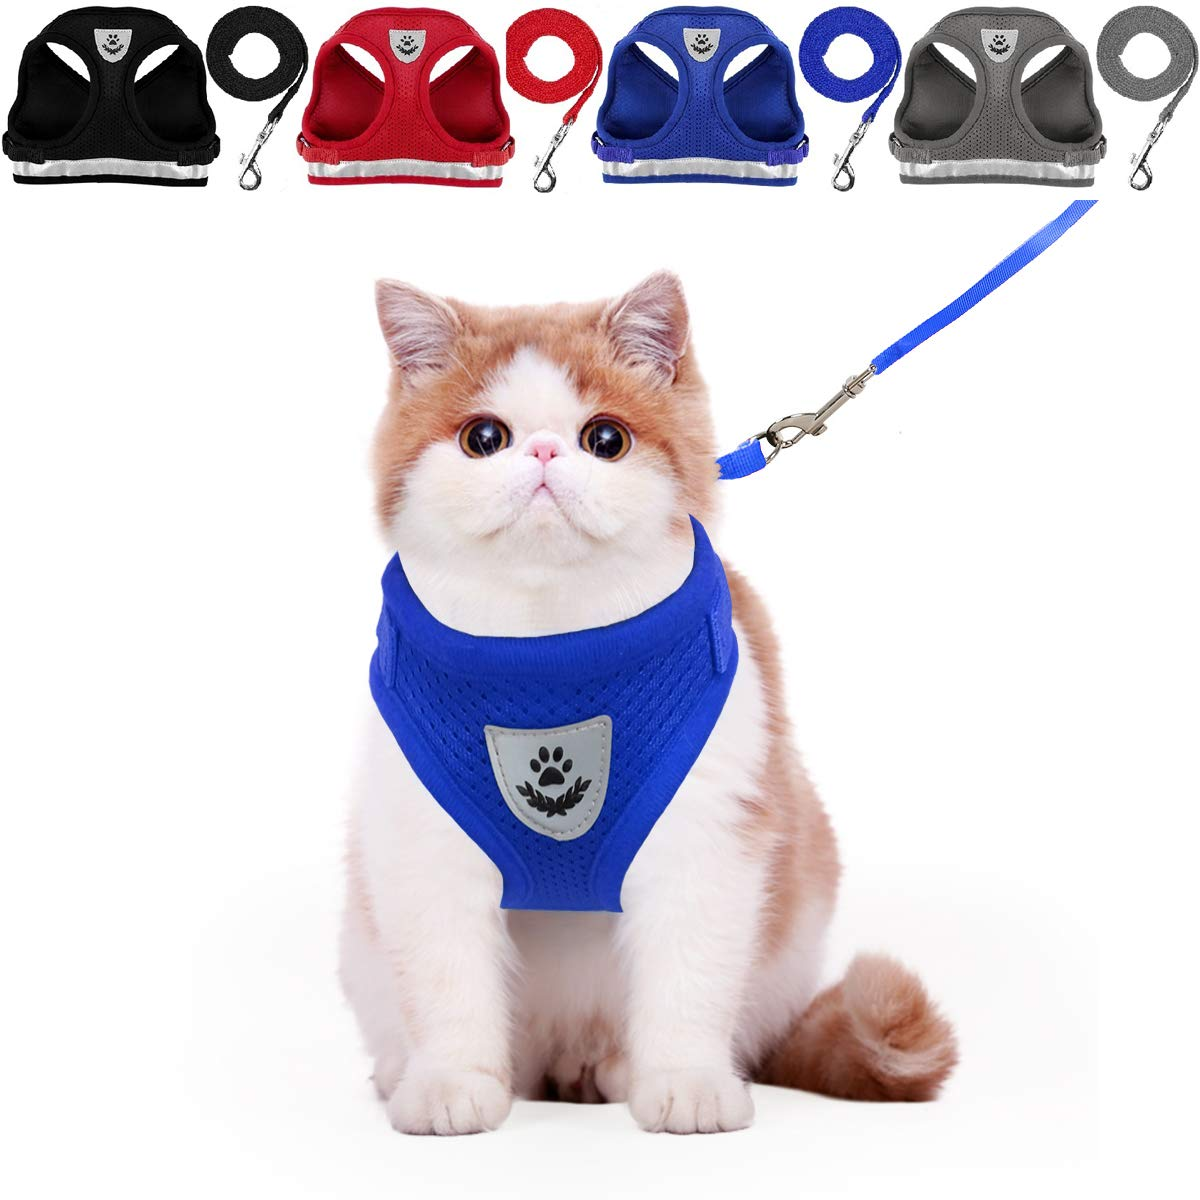 7. Yujueshop Cat Harness